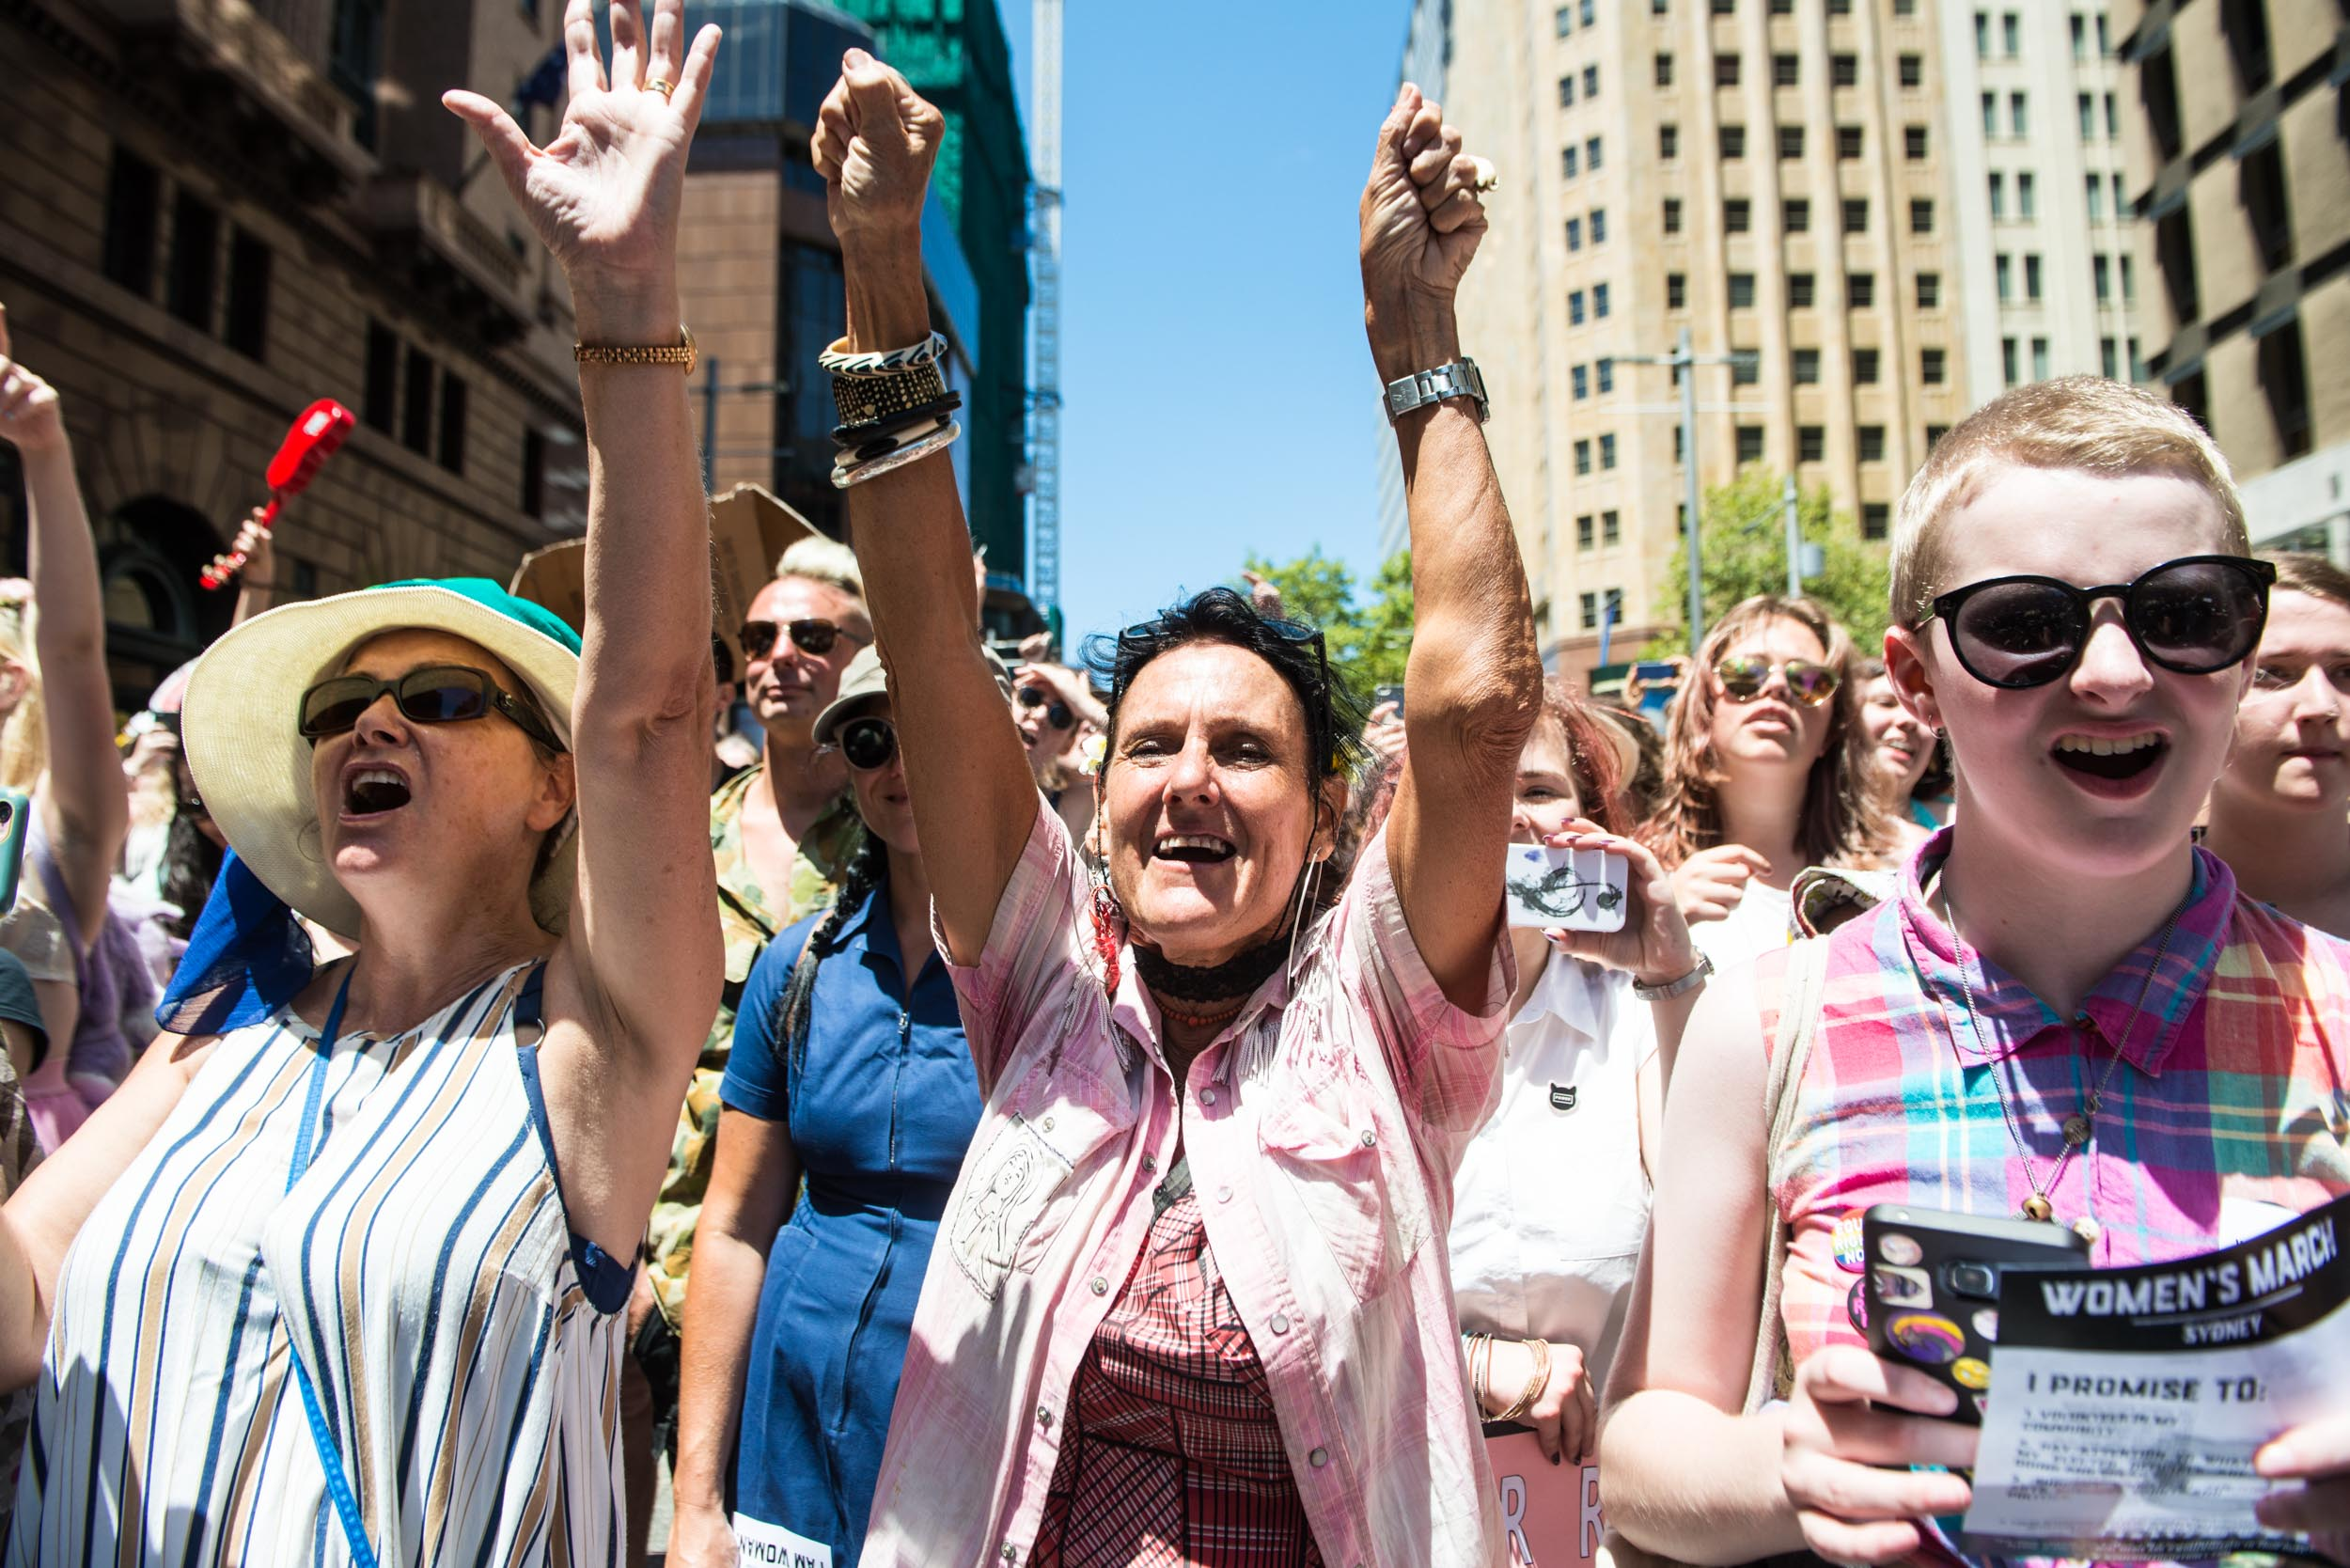 womens march - Current events - Photo credit Nicola Bailey.jpg